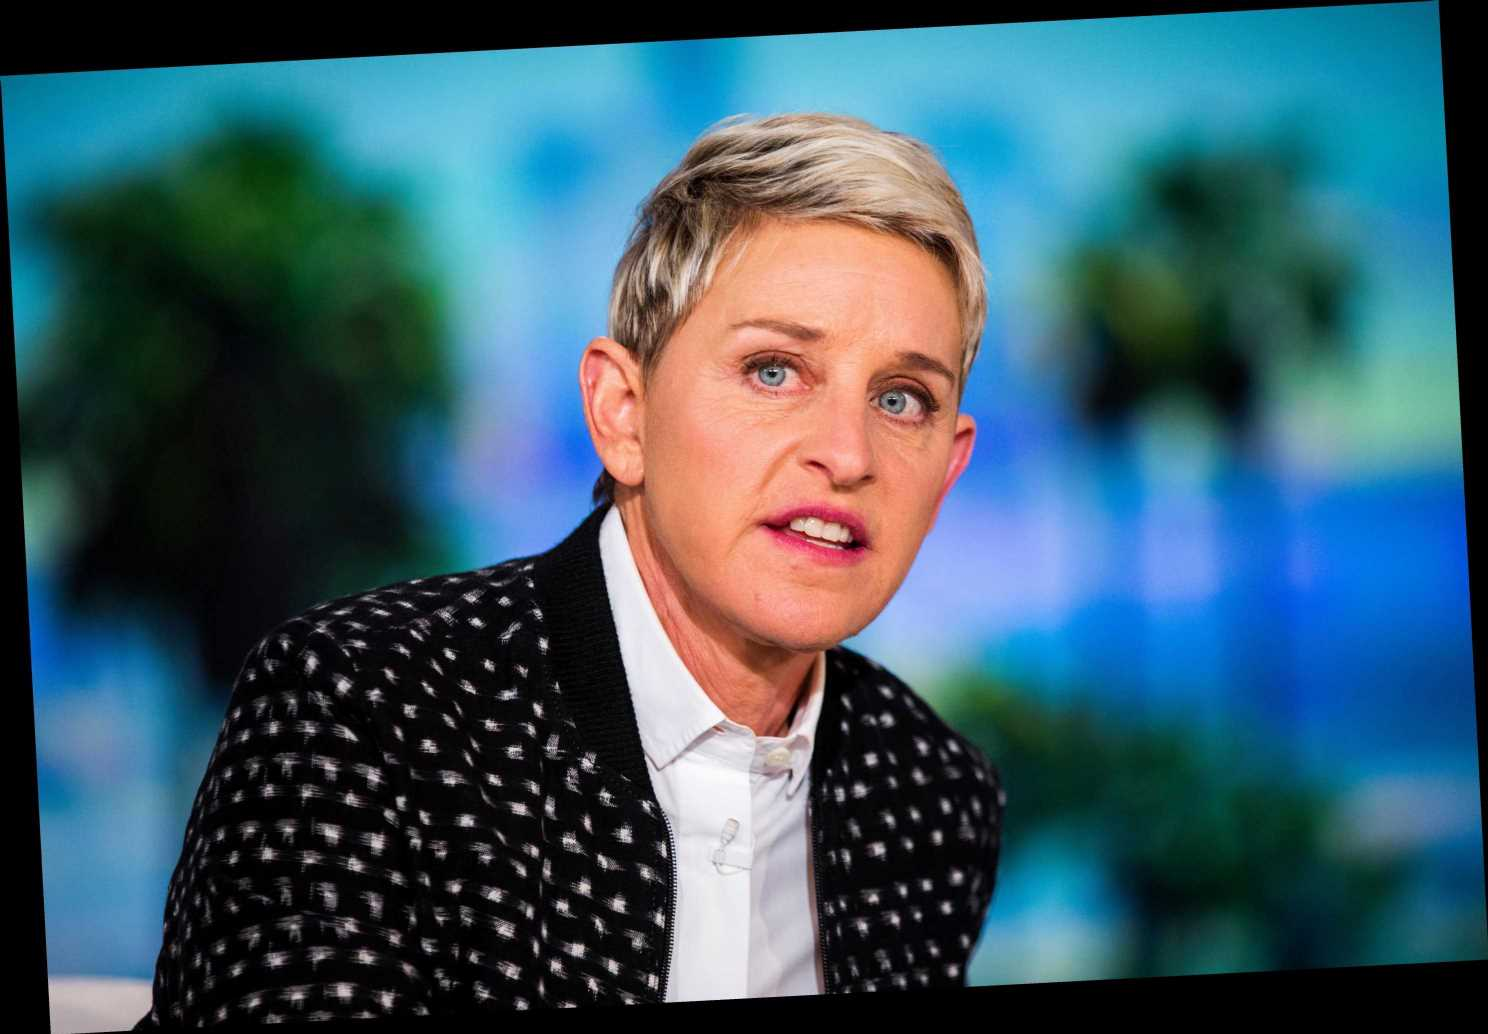 Ellen DeGeneres is 'at the end of her rope' as rumors she's 'mean' and 'cheap' run rampant